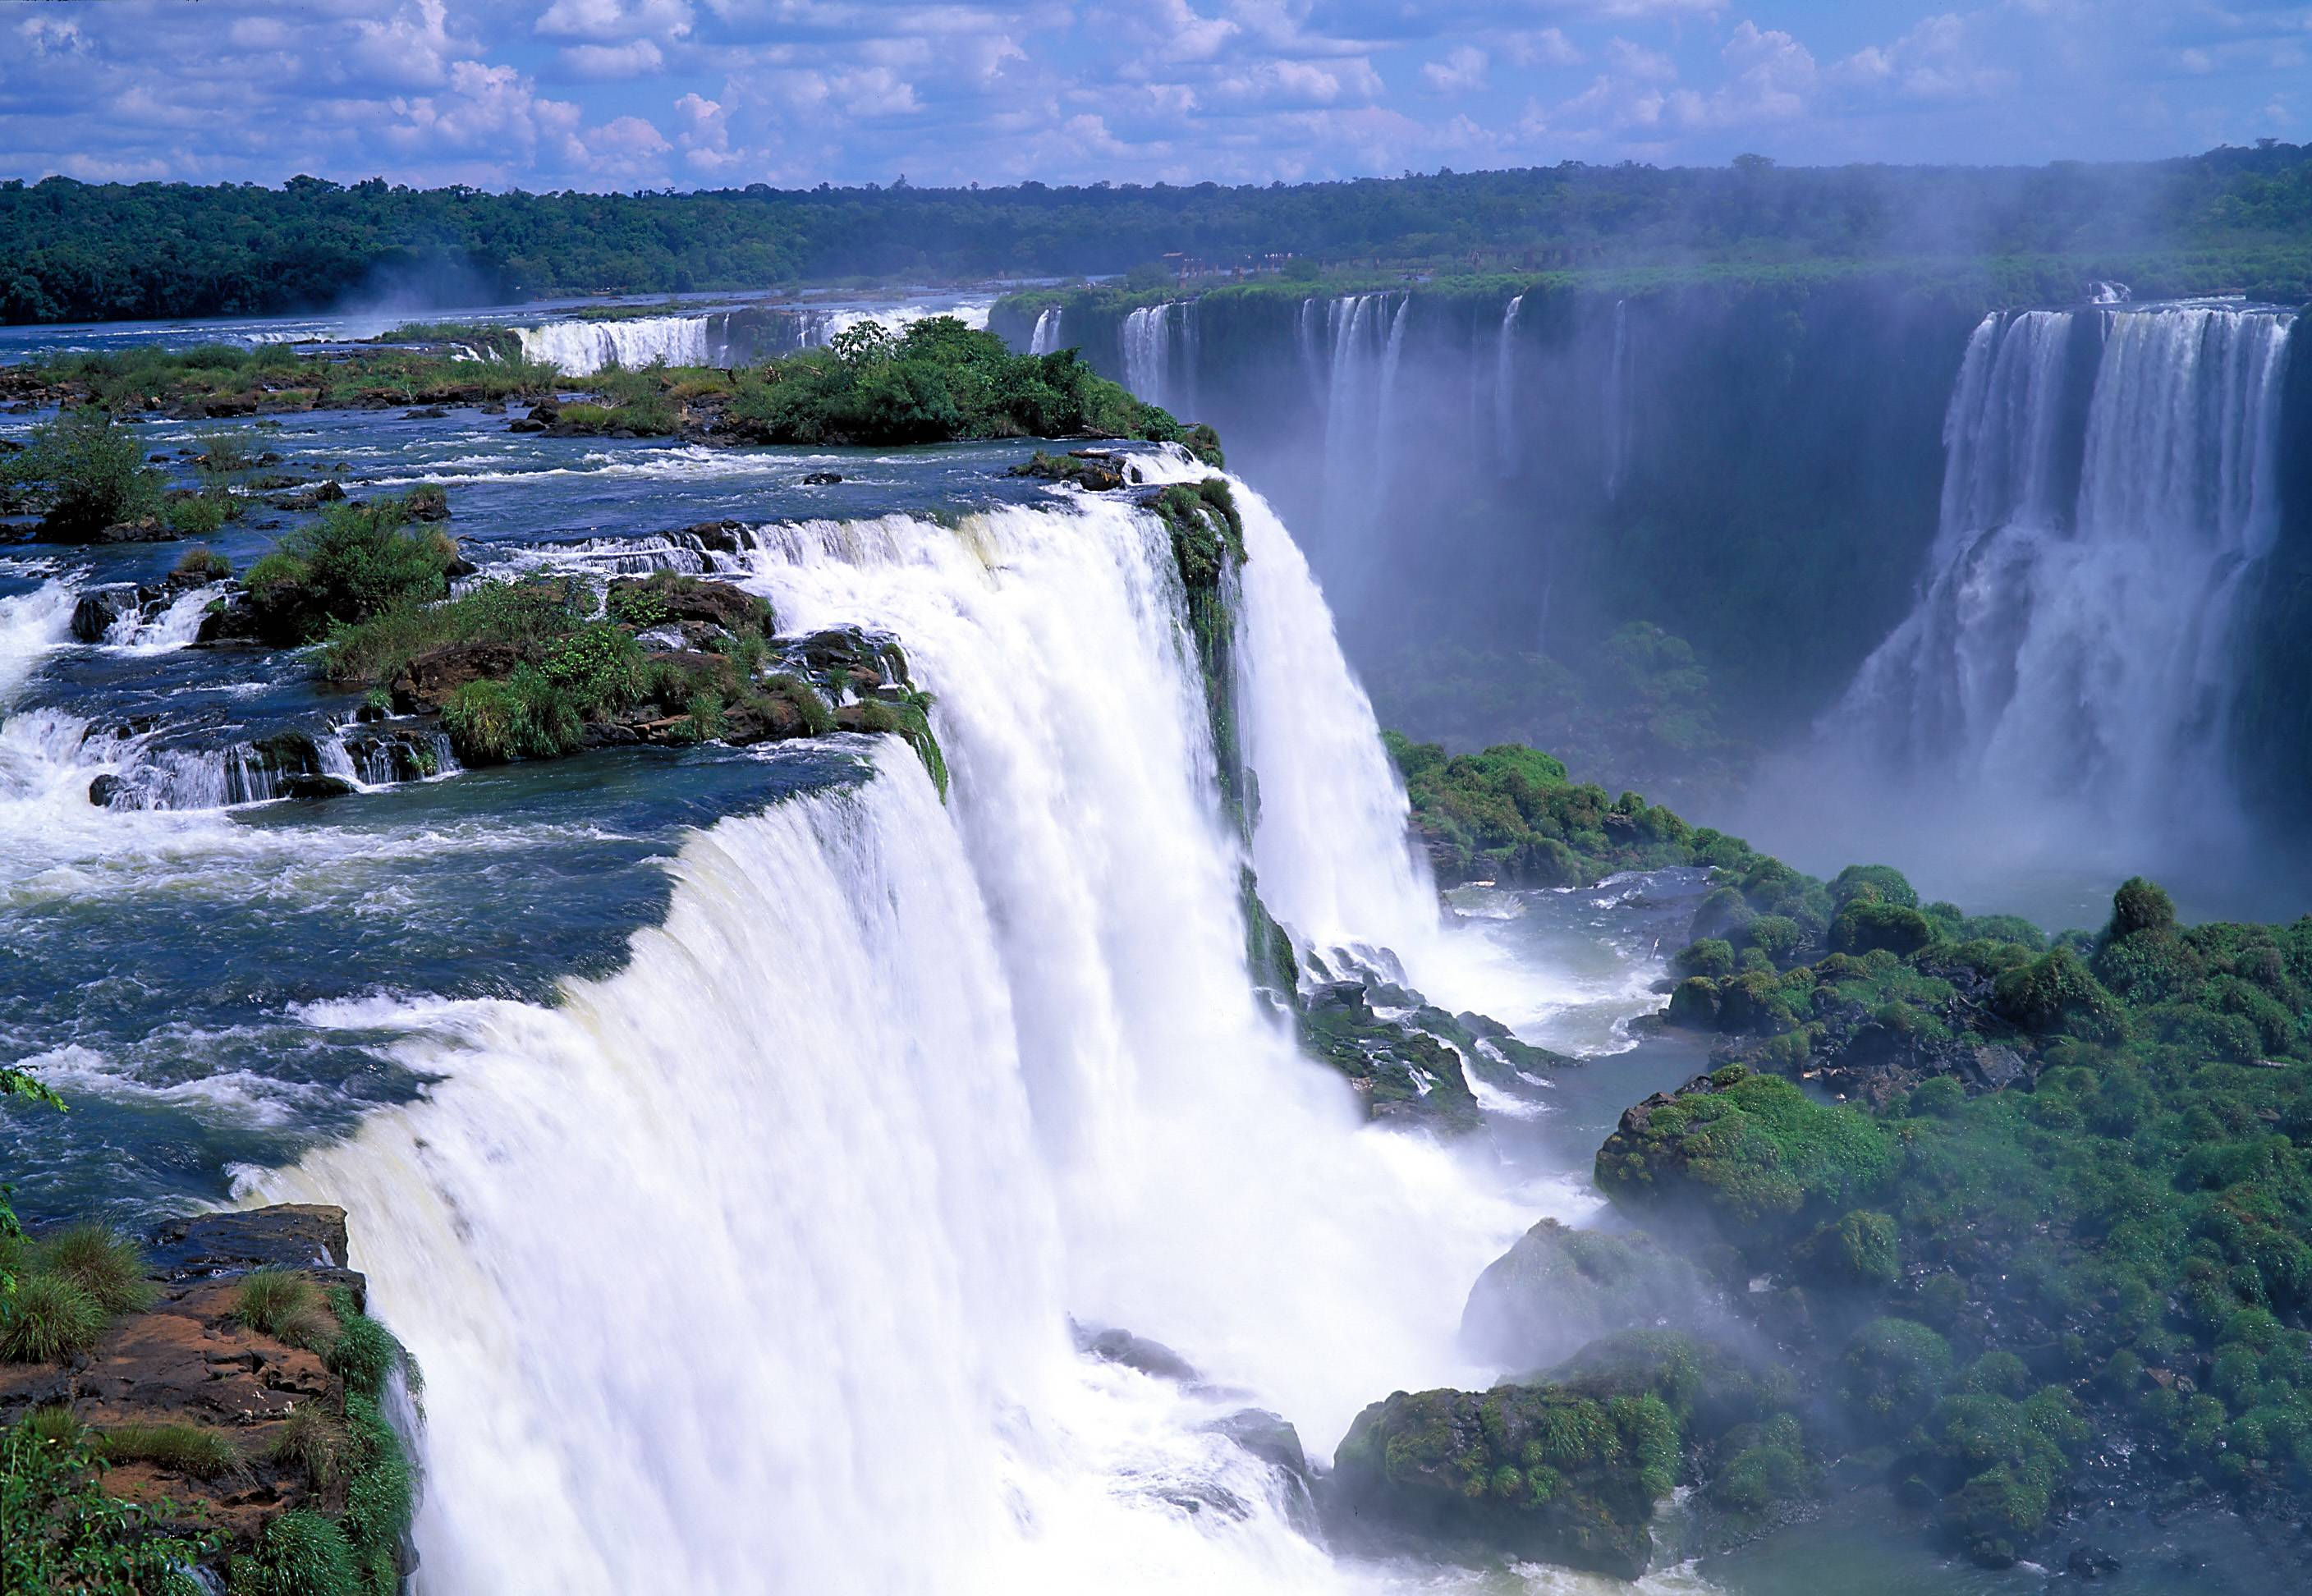 Iguazu Falls Wallpapers - Wallpaper Cave Wonder Of Nature Wallpaper